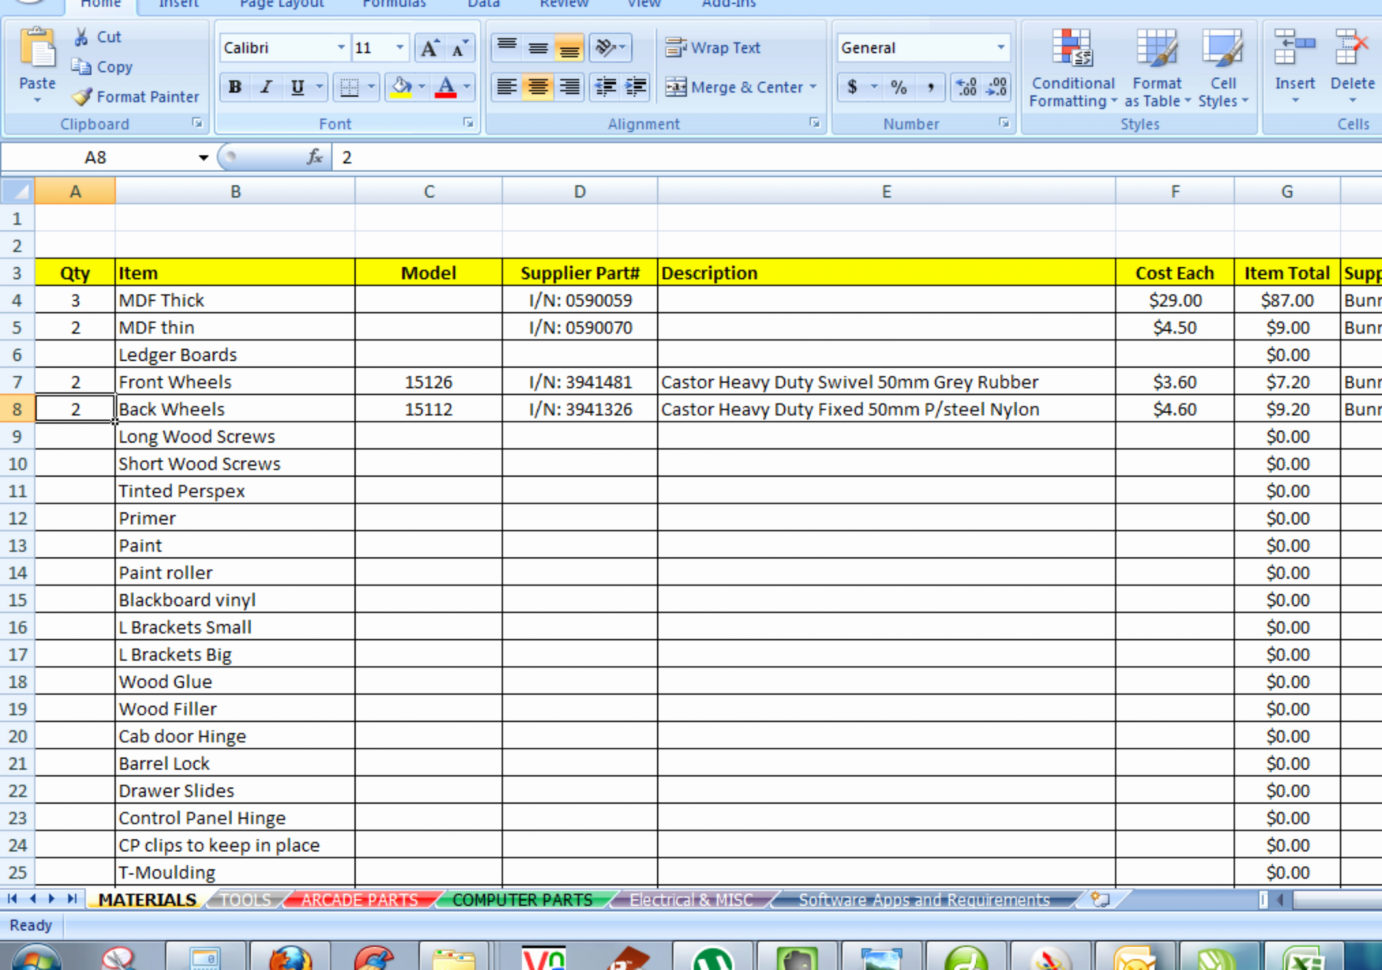 Material List For Building A House Spreadsheet Intended For Material List For Building House Spreadsheet As Google Spreadsheets